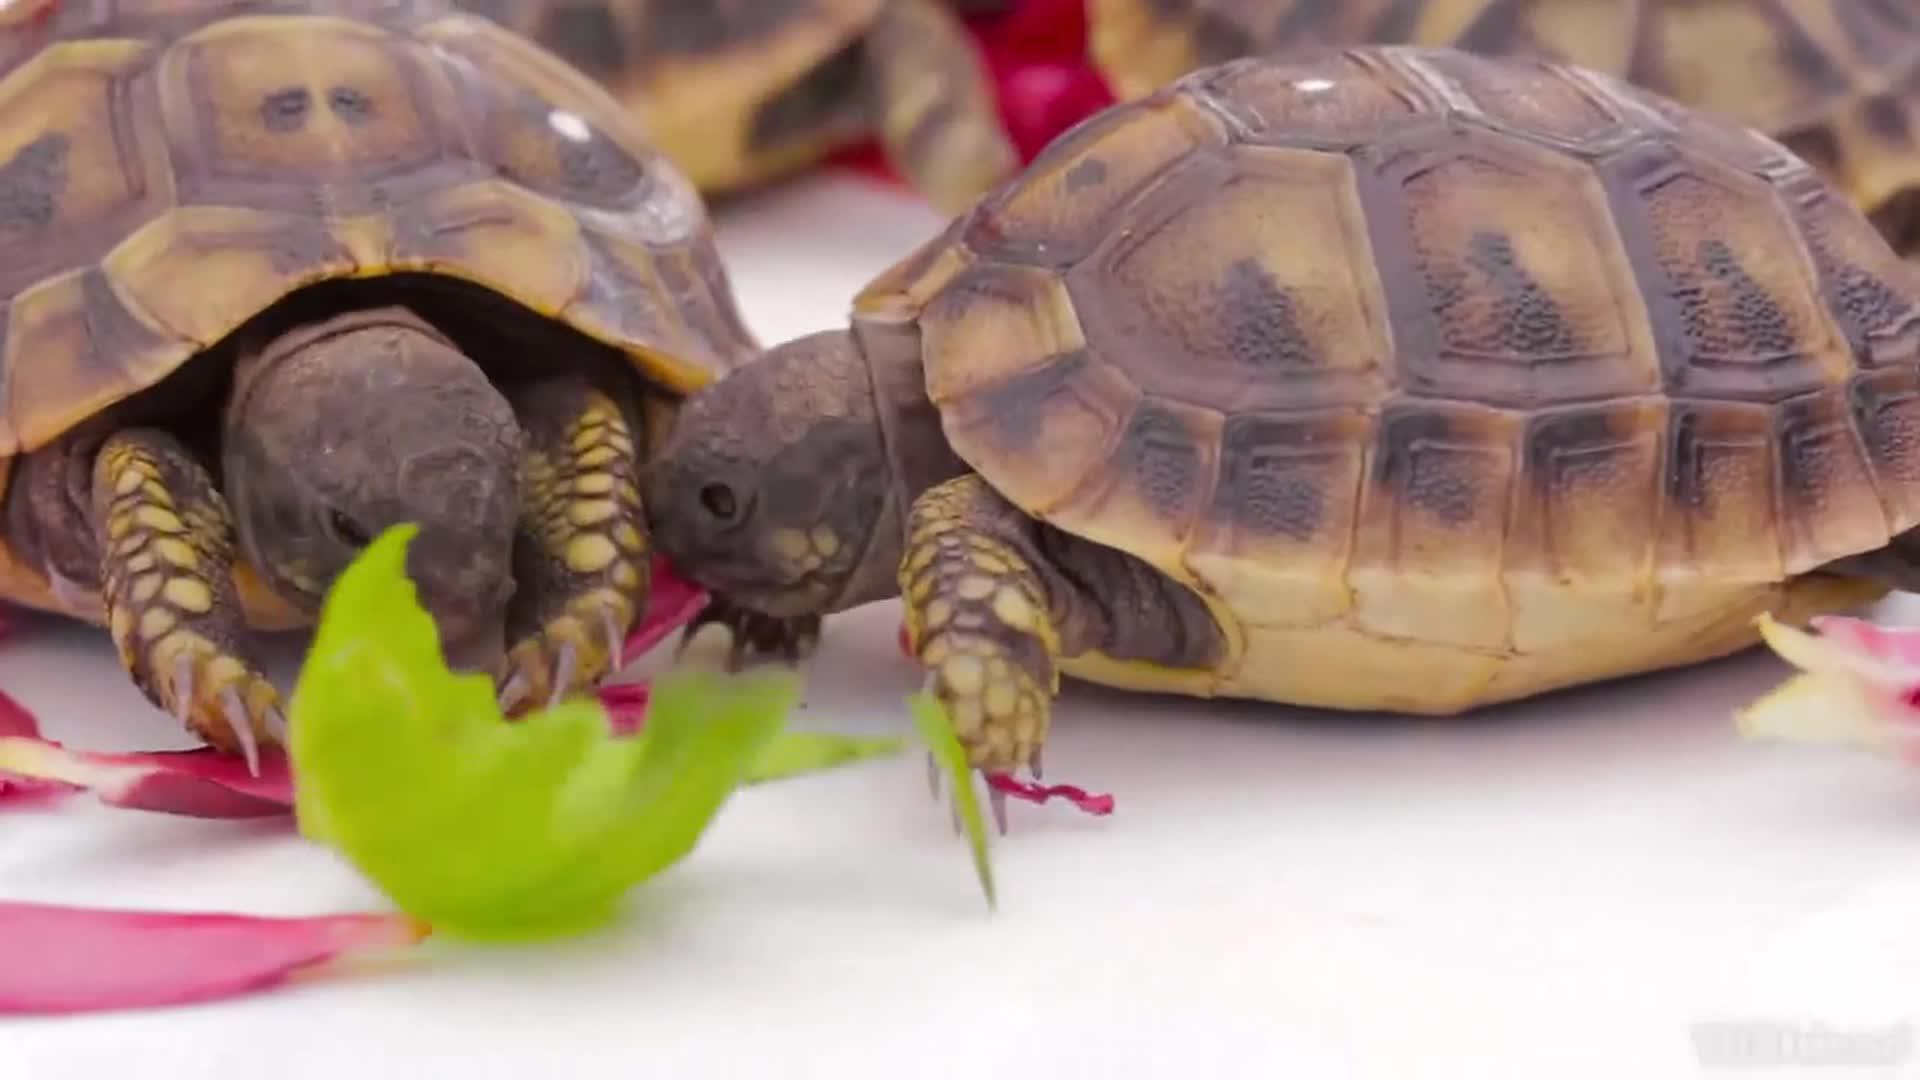 Tortoise Stuck On Back Continues To Eat Flower Jukin Media Inc